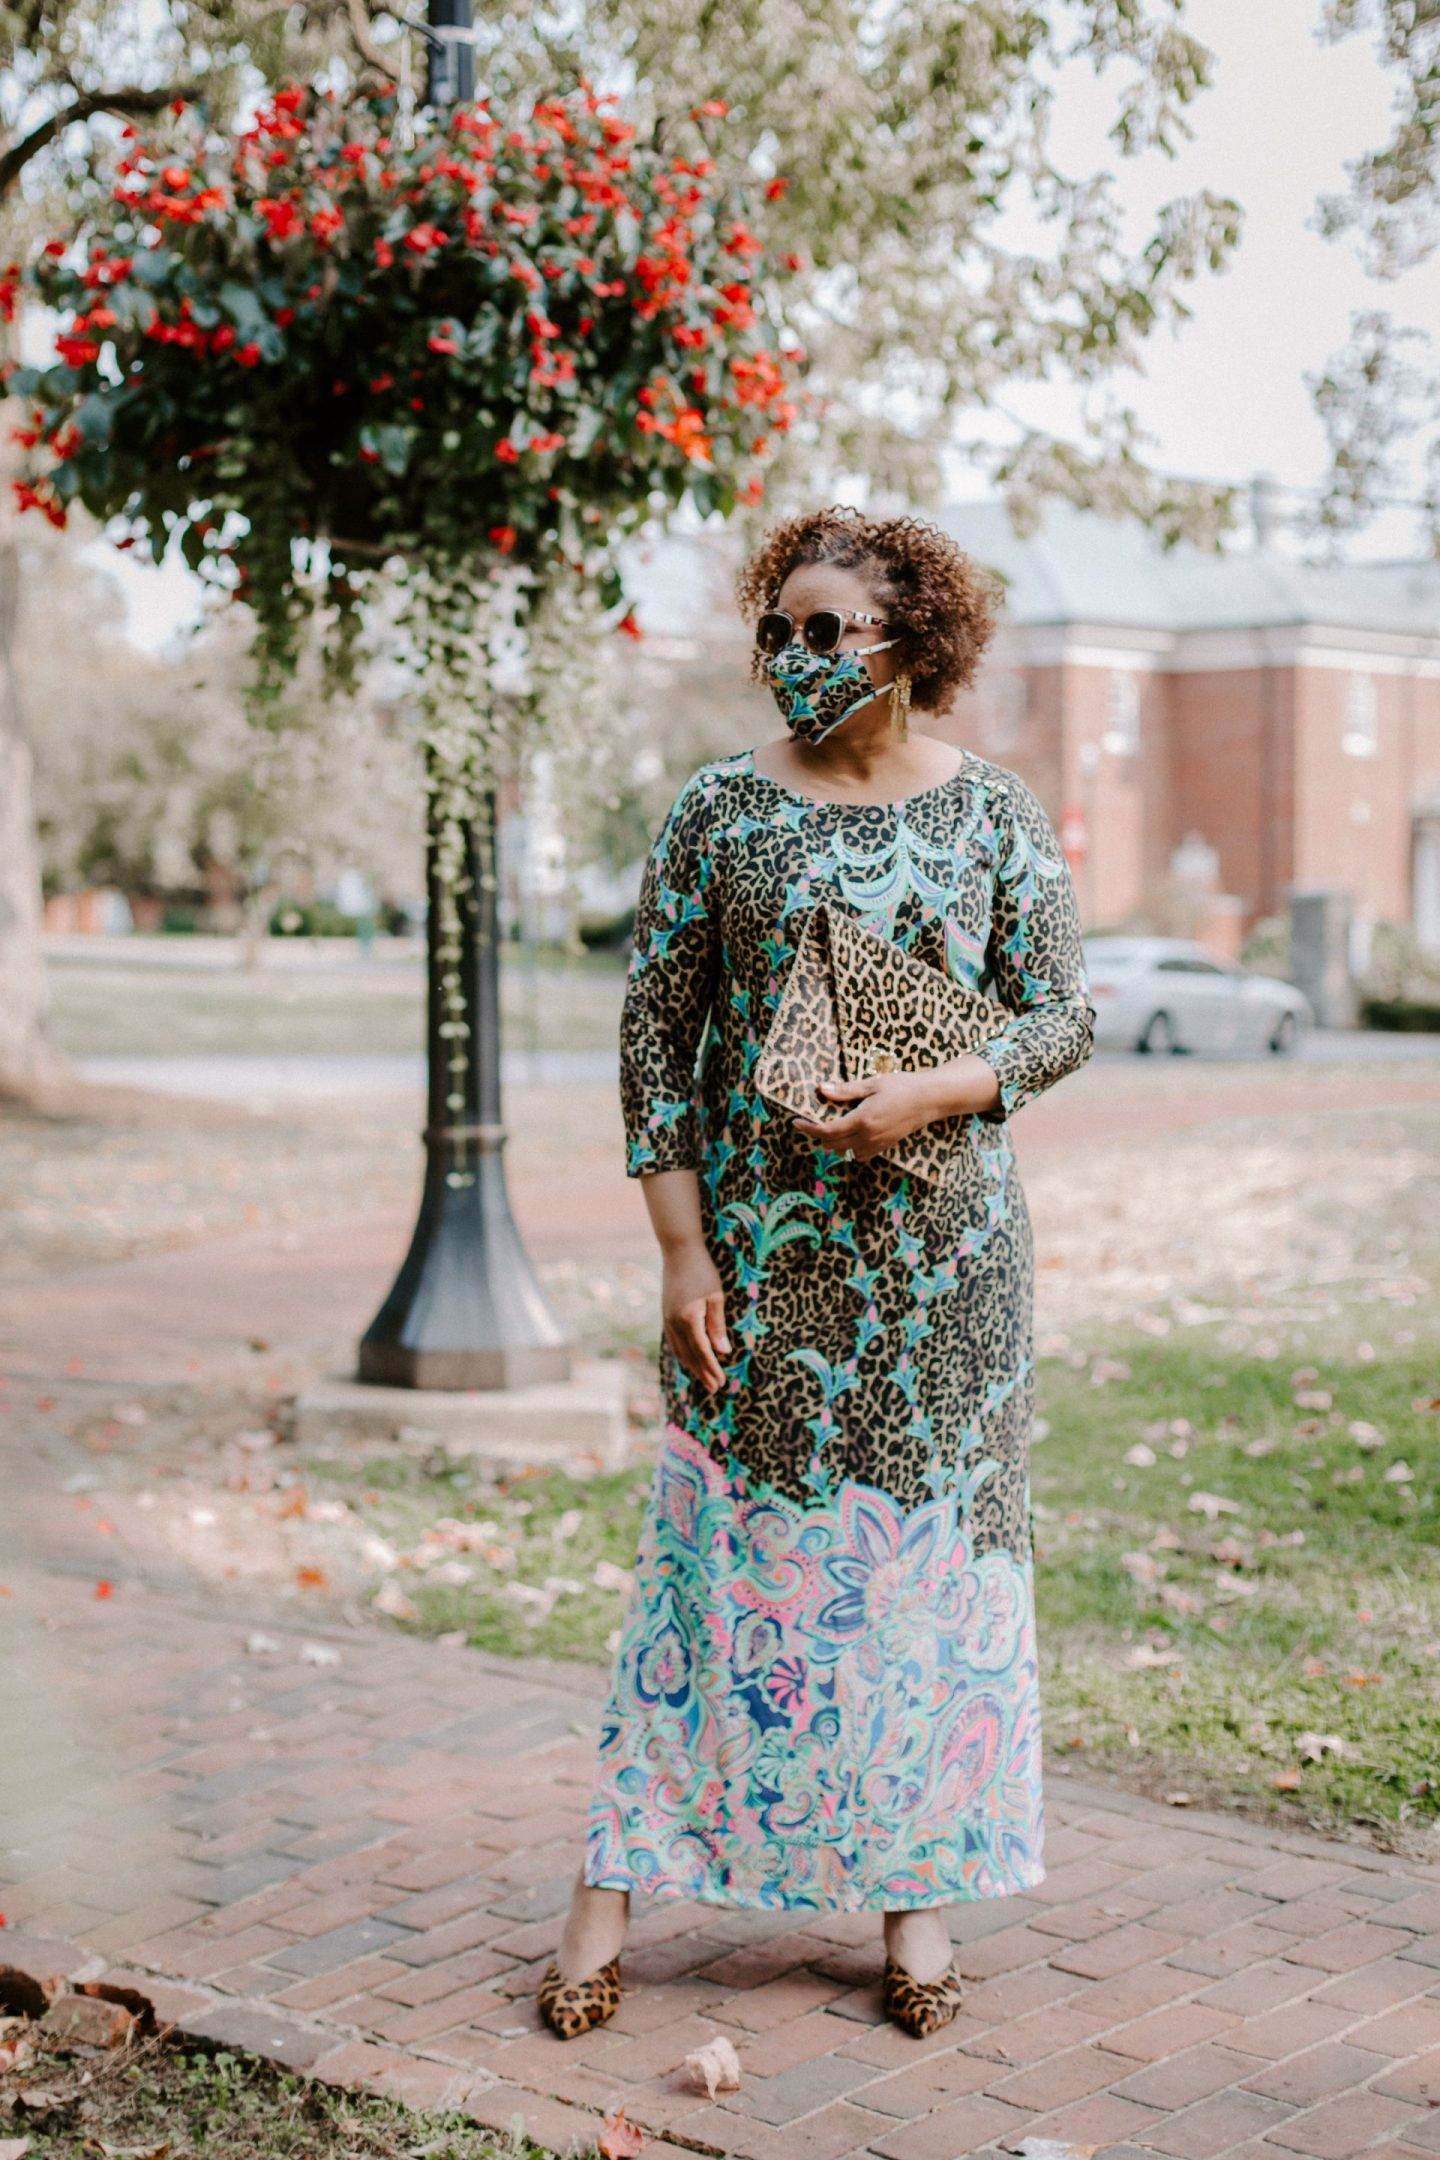 Lilly Pulitzer Dress by popular Kentucky fashion blog, Really Rynetta: image of a woman wearing a Lilly Pulitzer UPF 50+ ChillyLilly Seraline Maxi Dress, leopard print heels, Kendra Scott Holland Statement Earrings and holding a Kate Spade leopard print clutch.